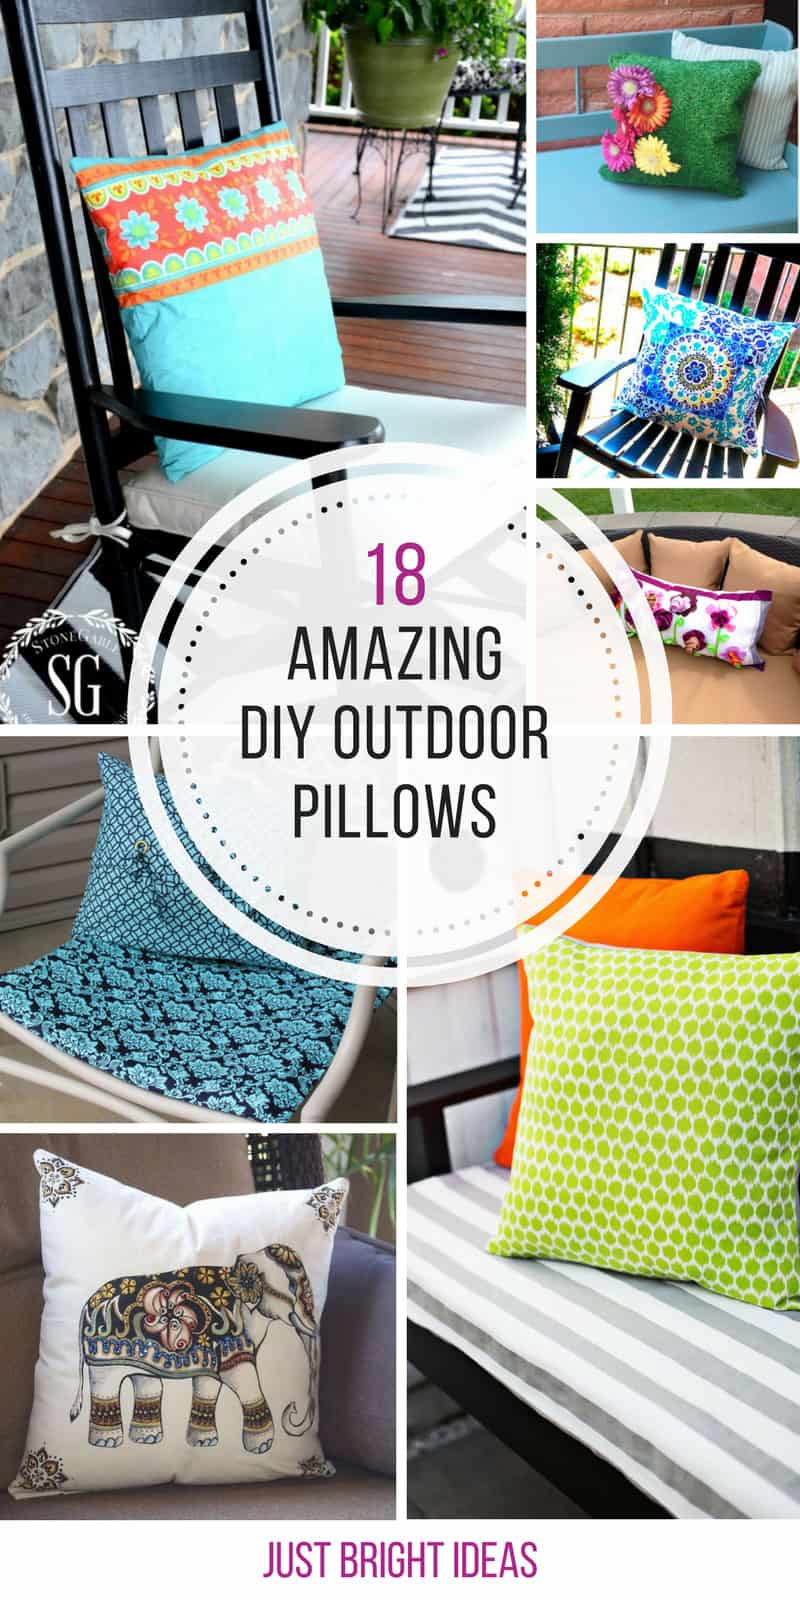 Loving these DIY outdoor pillows! Thanks for sharing!